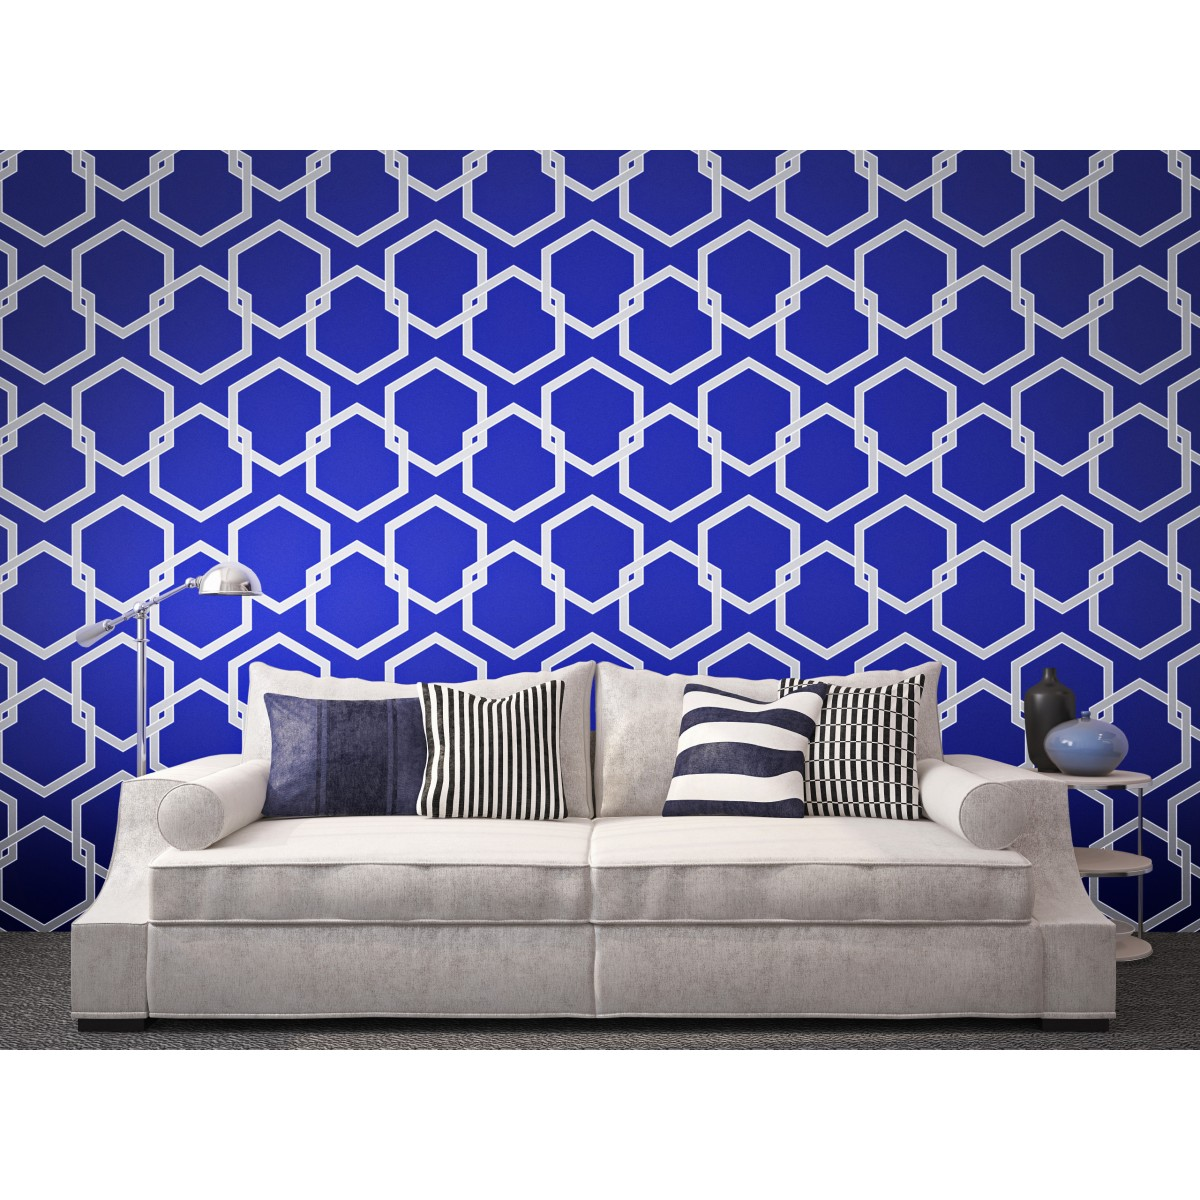 Tempaper HONEYCOMB Deep Blue Wallpaper   Tempaper Designs 1200x1200